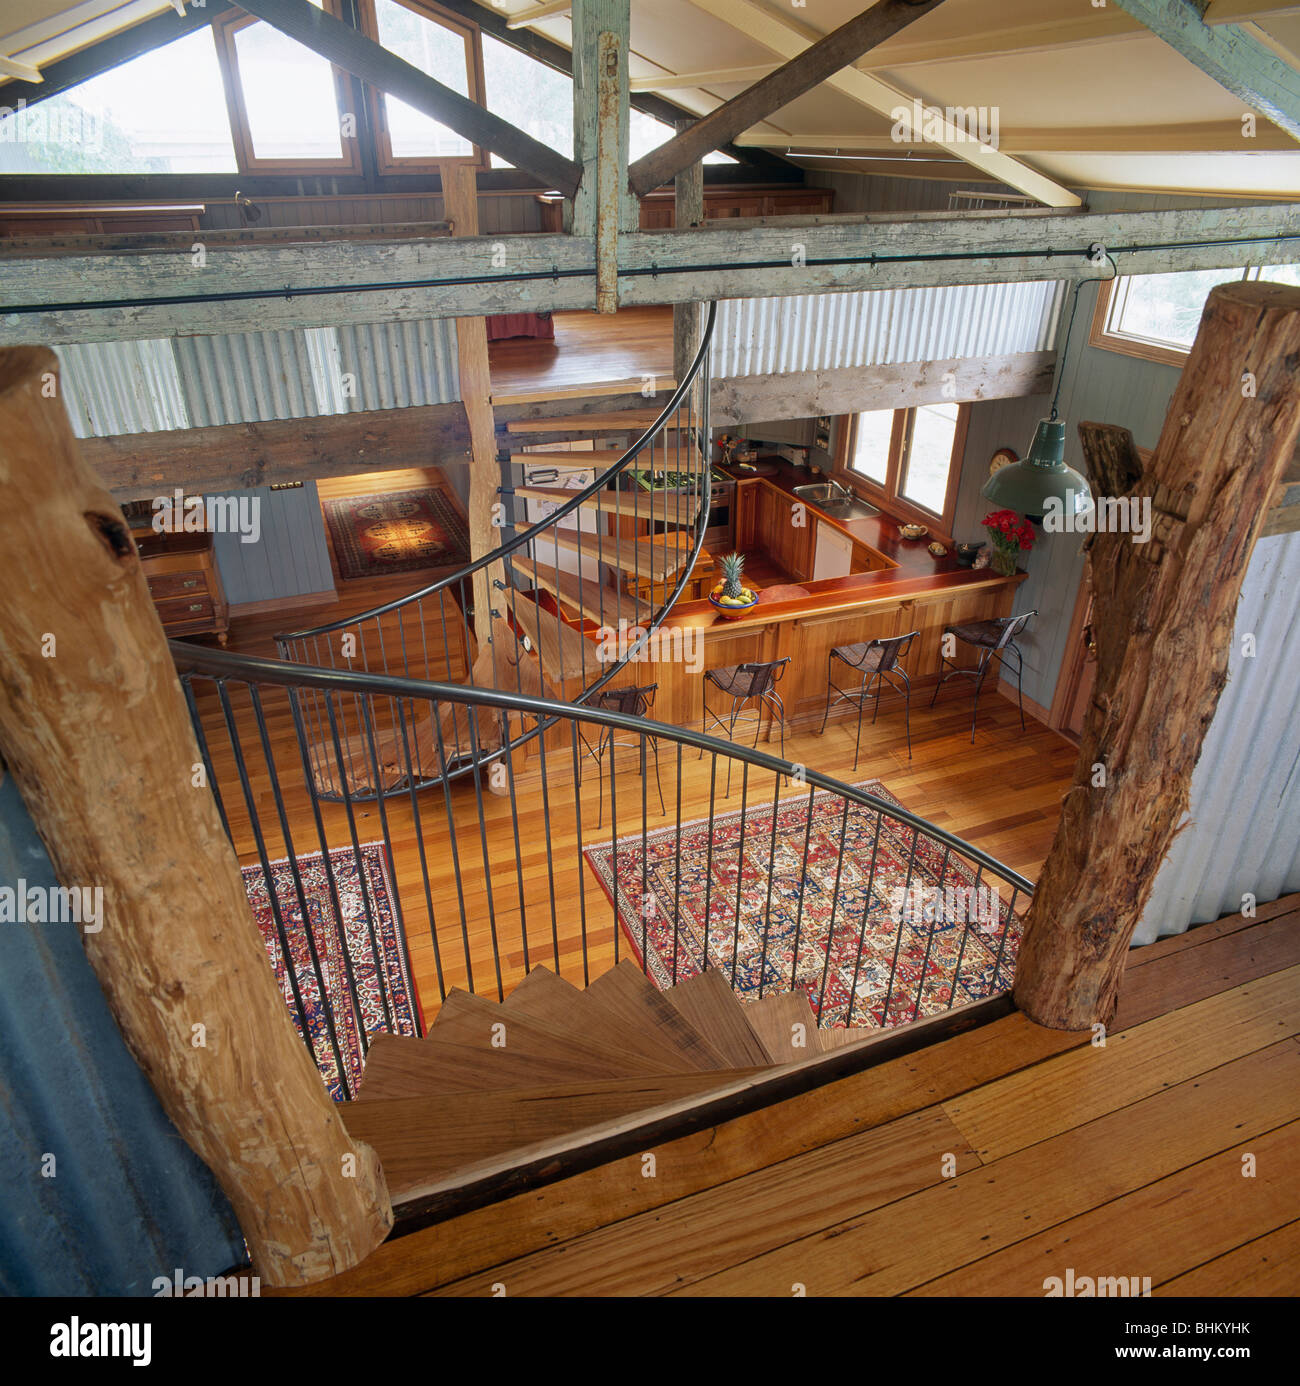 Birdseye View Of Modern Open Plan Barn Conversion Hall With Apex Roof And  Wooden Flooring